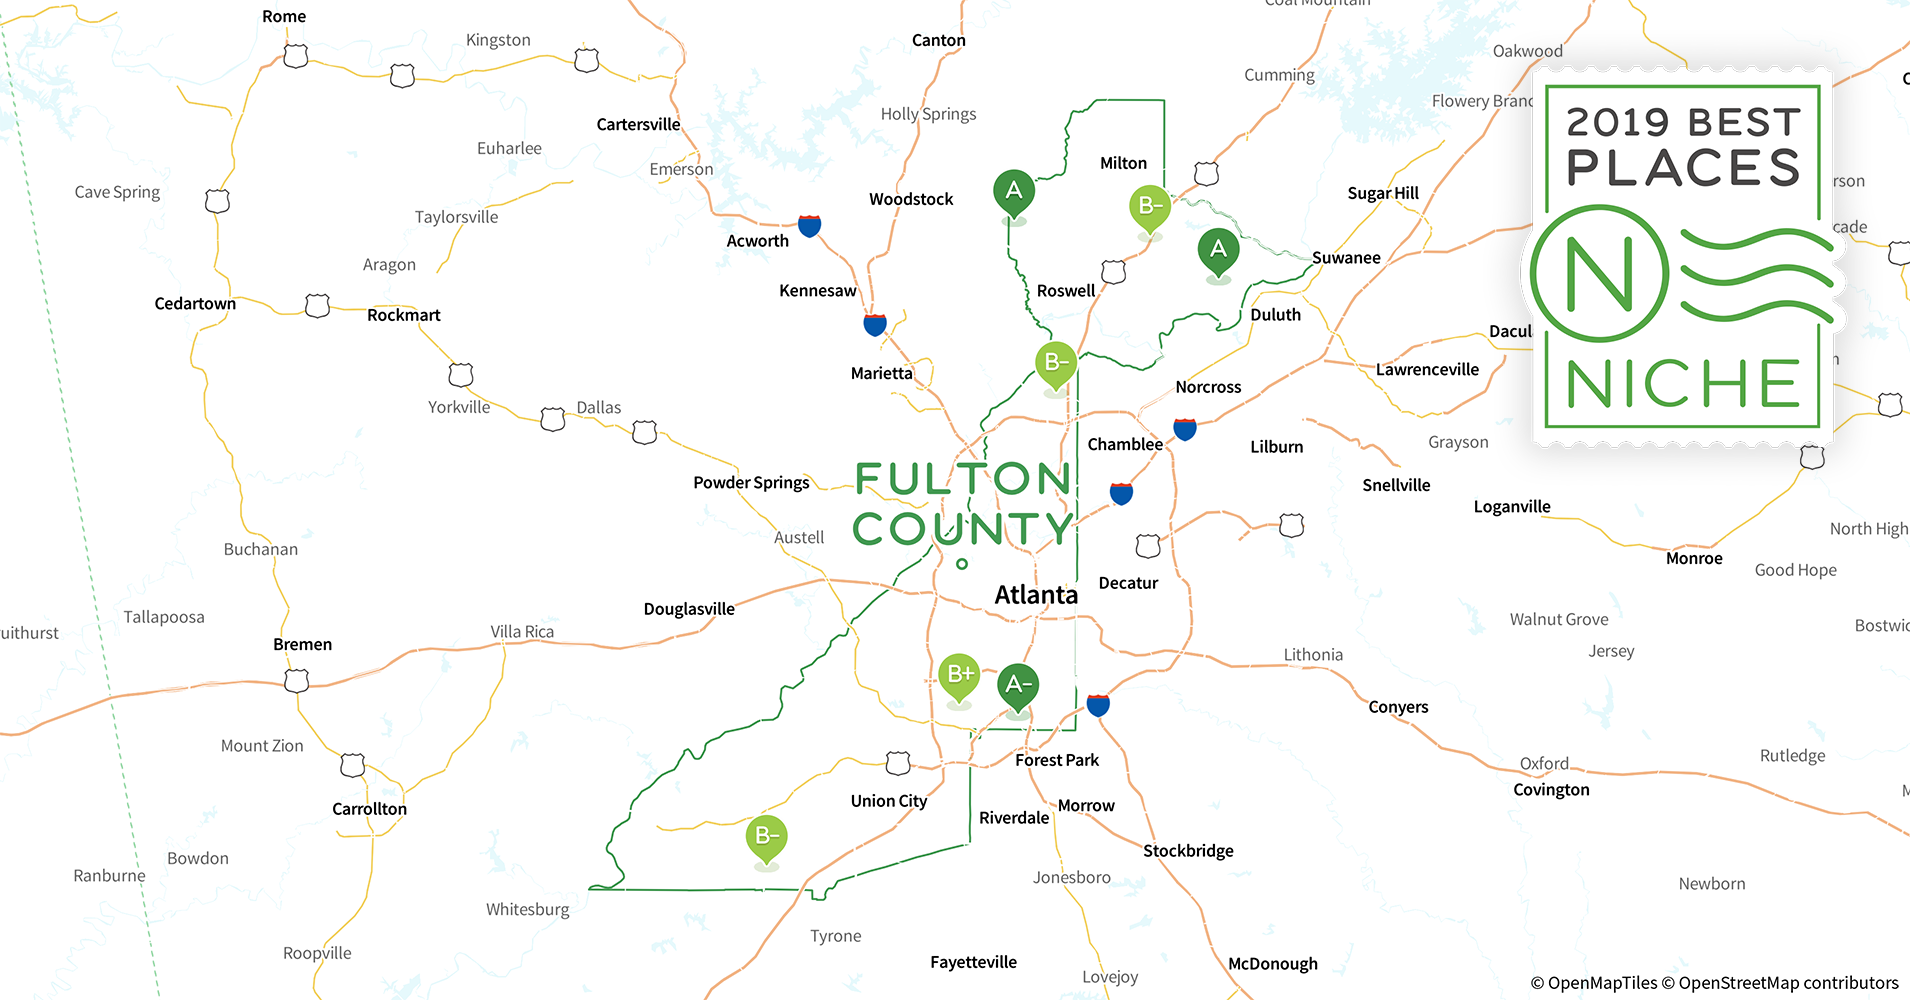 2019 Best Places to Raise a Family in Fulton County, GA - Niche